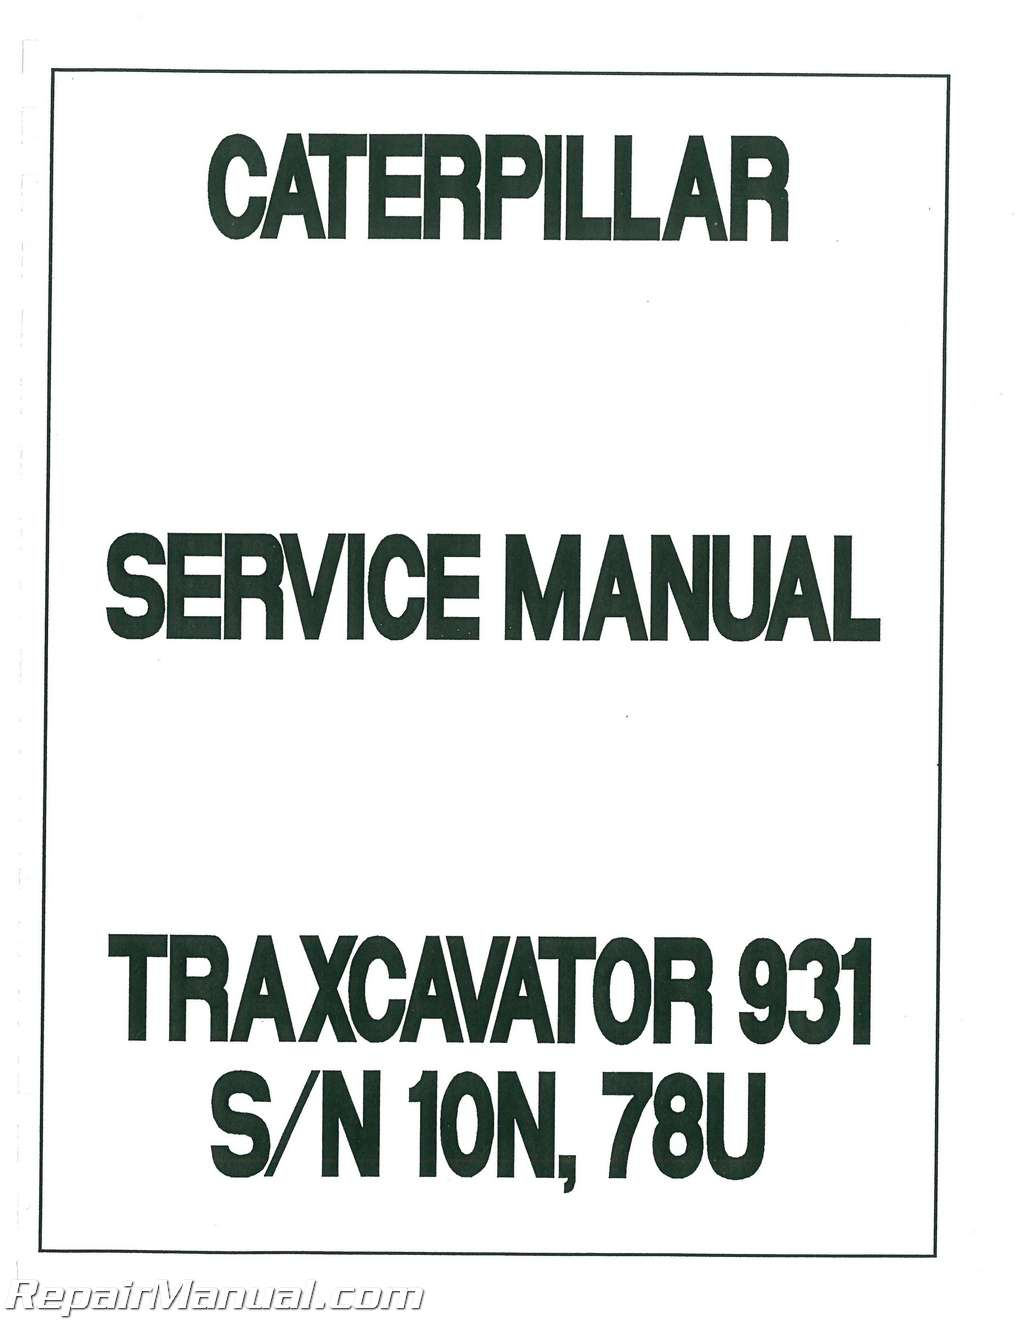 caterpillar 931traxcavator service manual rh repairmanual com caterpillar service manuals for sale caterpillar service manuals pdf